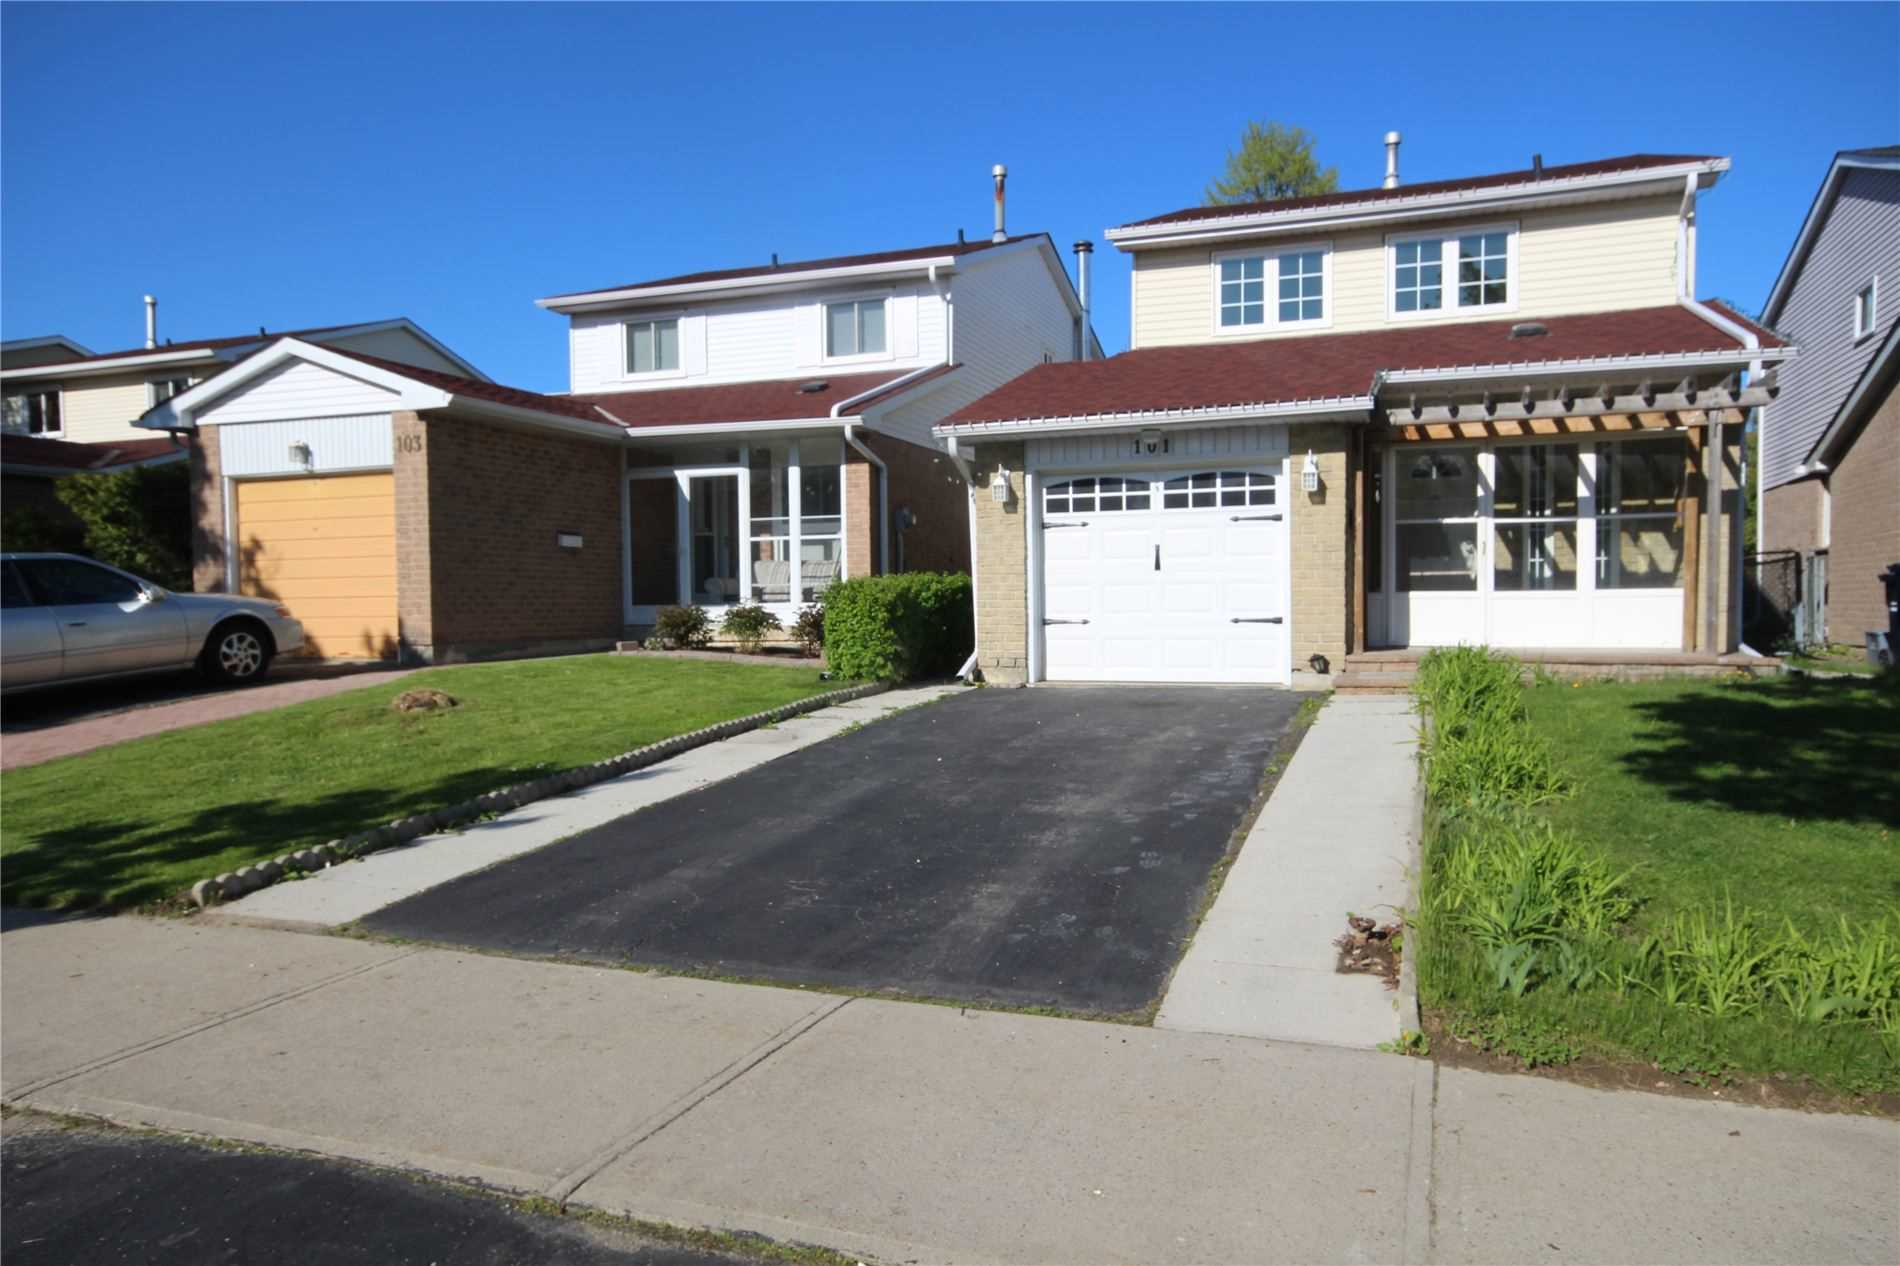 Detached house For Lease In Toronto - 101 Barnwell Dr, Toronto, Ontario, Canada M1V1Z1 , 3 Bedrooms Bedrooms, ,2 BathroomsBathrooms,Detached,For Lease,Main Fl,Barnwell